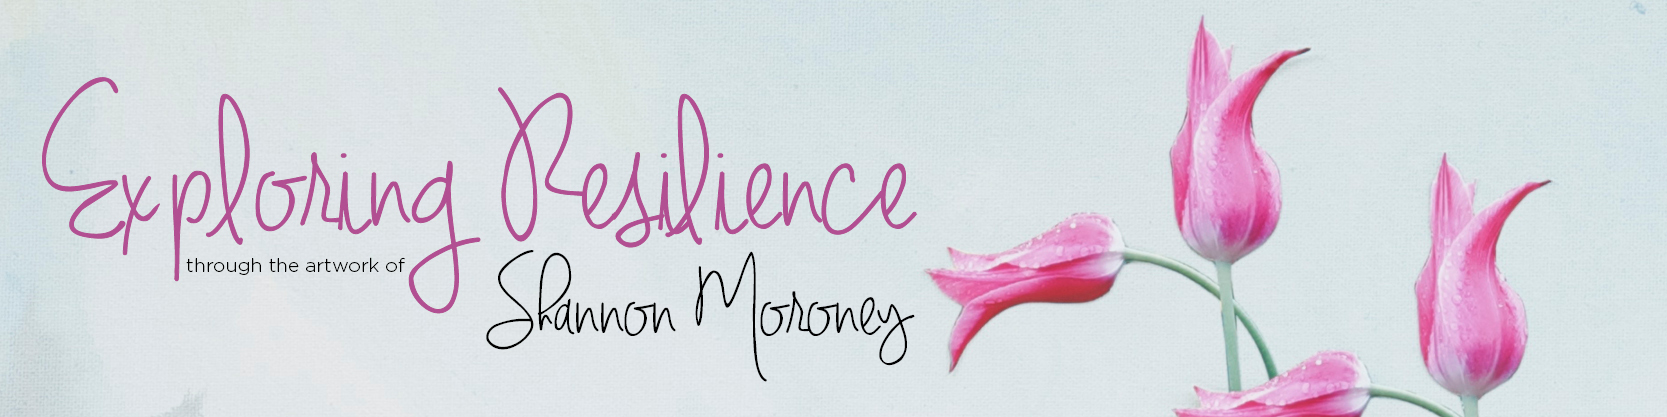 exploring resilience title banner